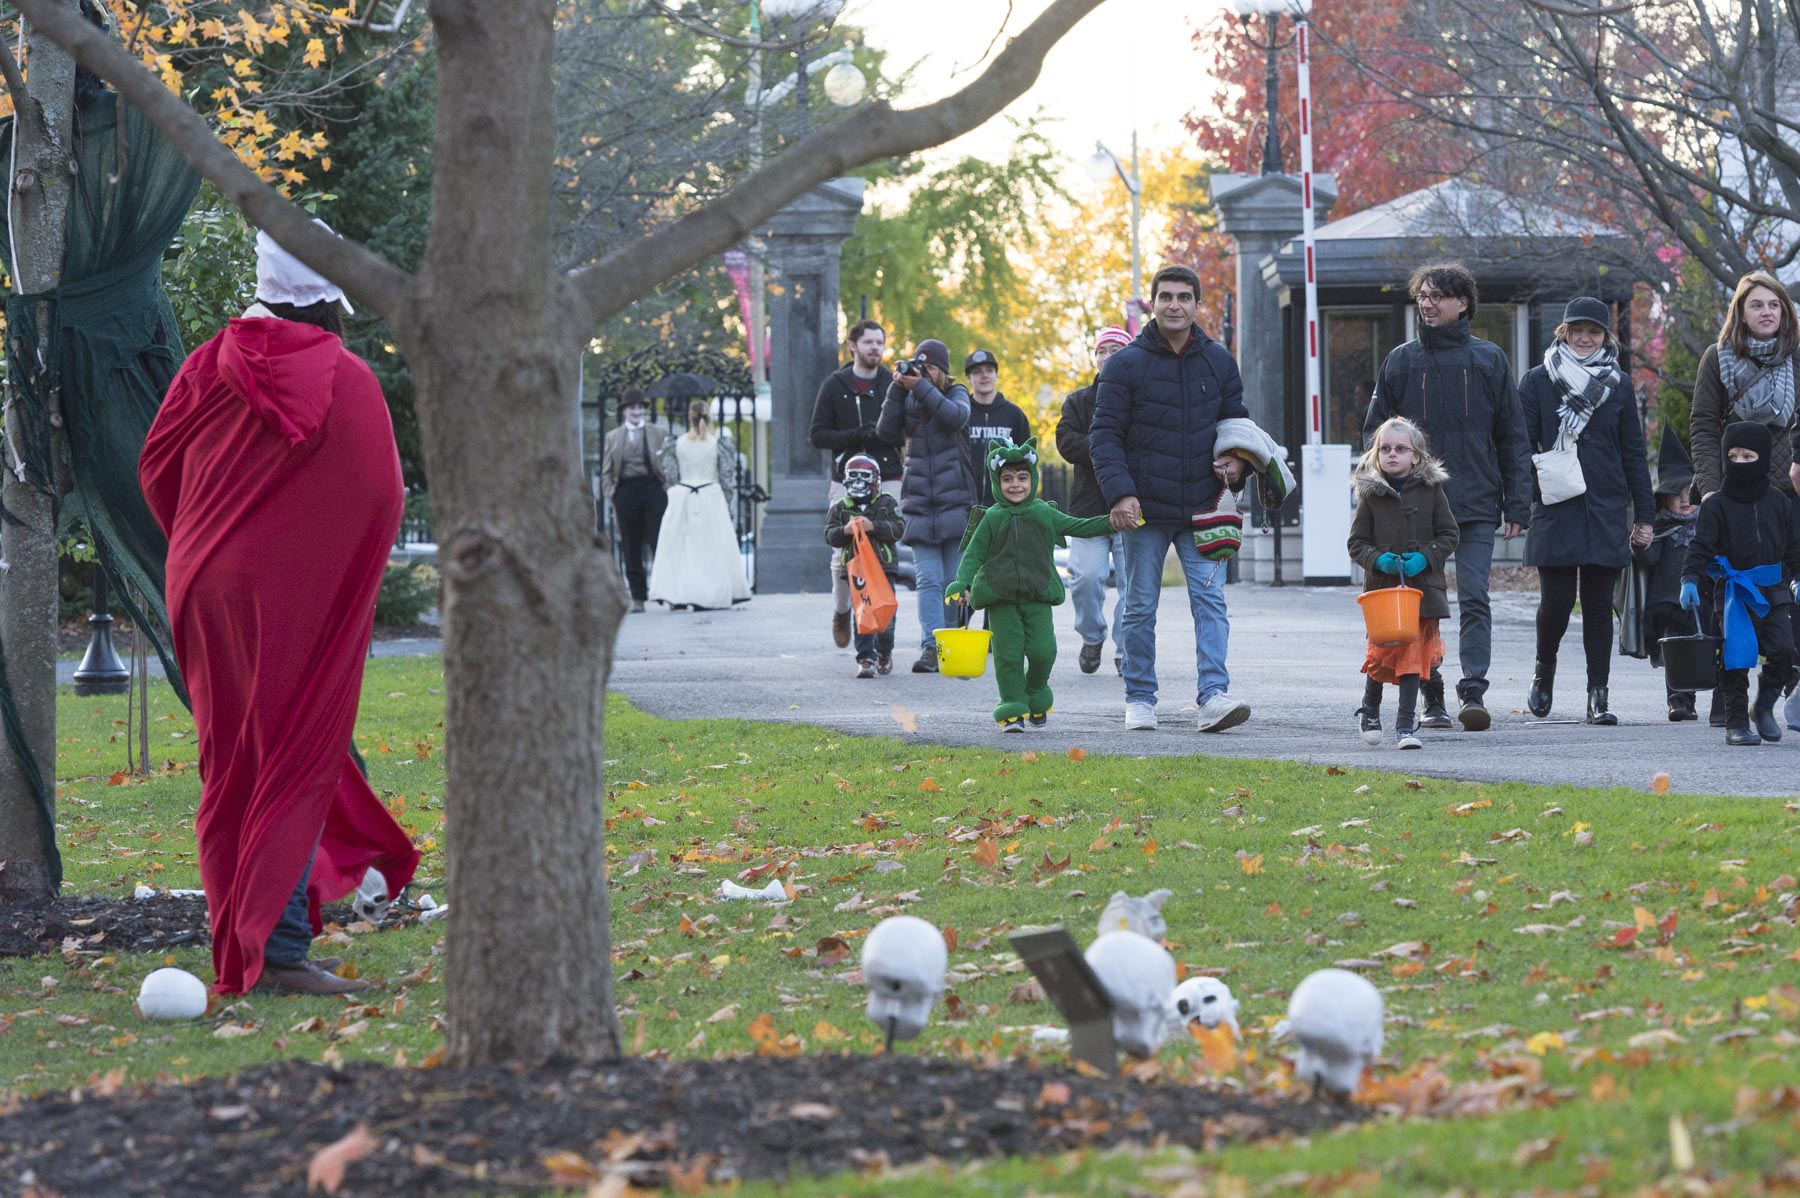 On Halloween night, the grounds of Rideau Hall were transformed into a haunted Victorian cemetery.